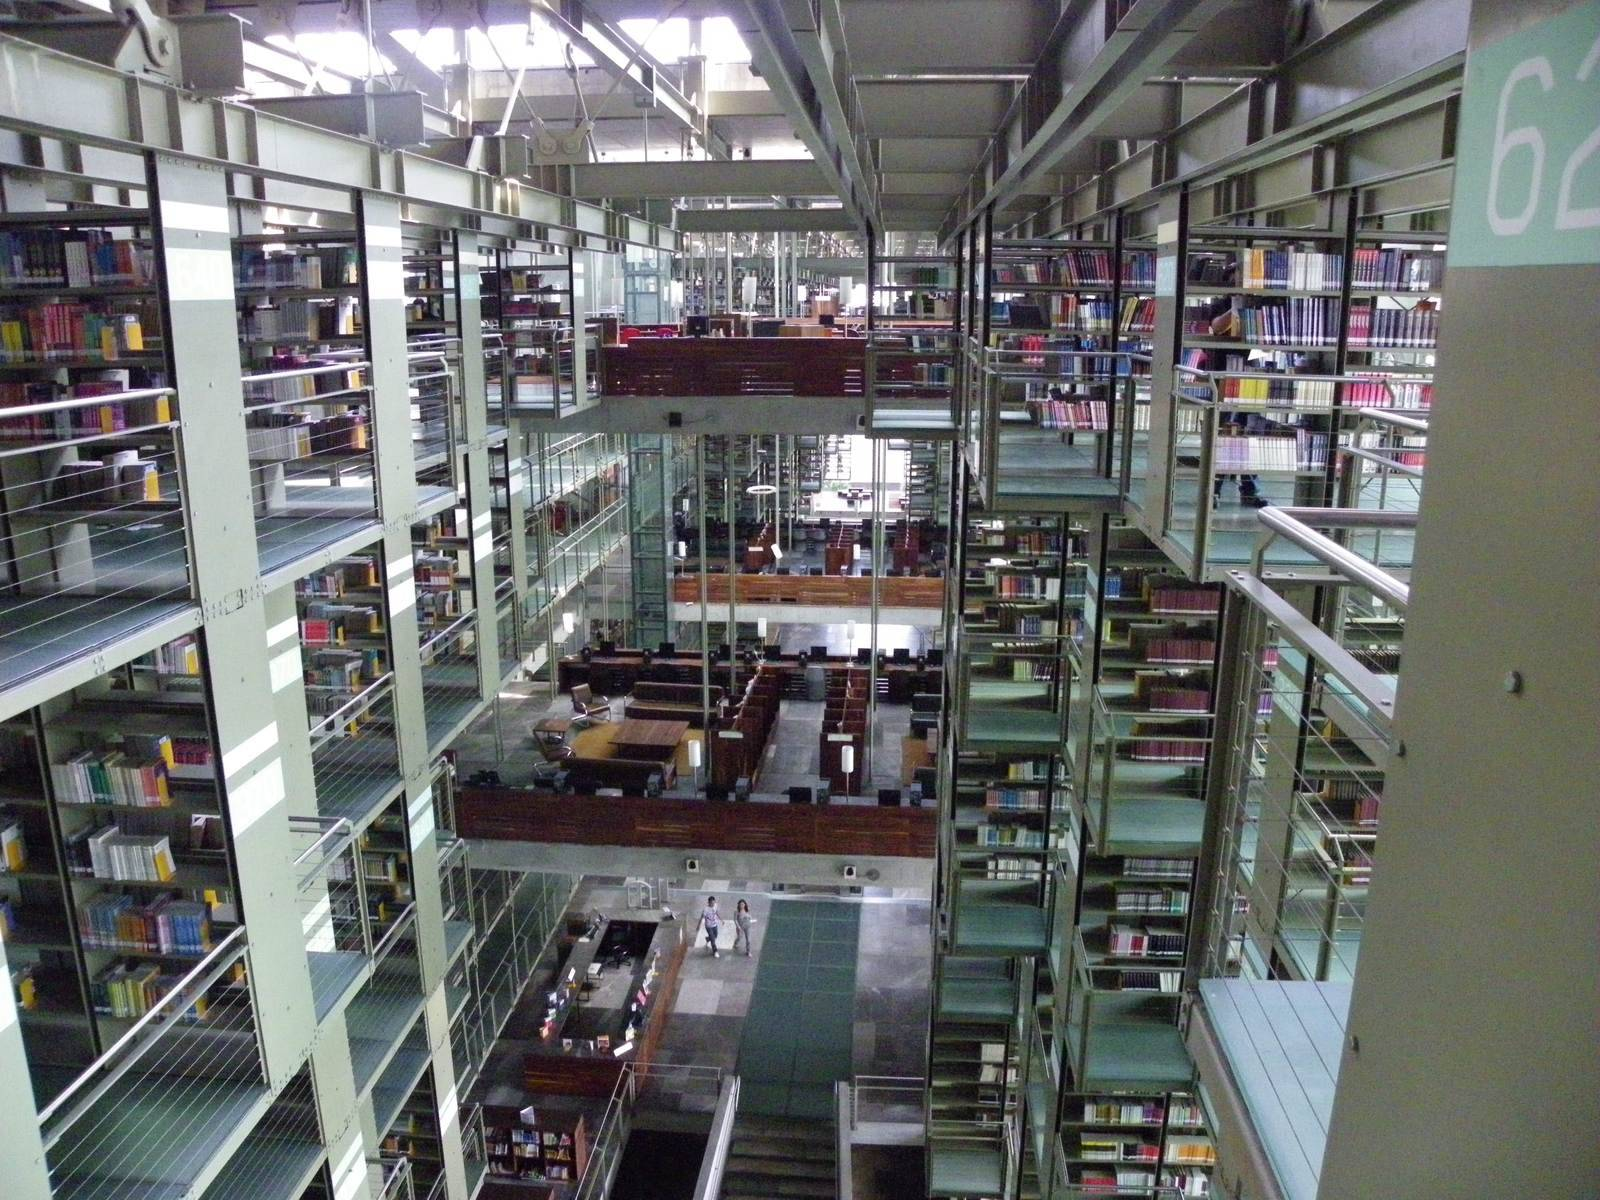 biblioteca vasconcelos Biblioteca Vasconcelos   Public Library in Mexico City